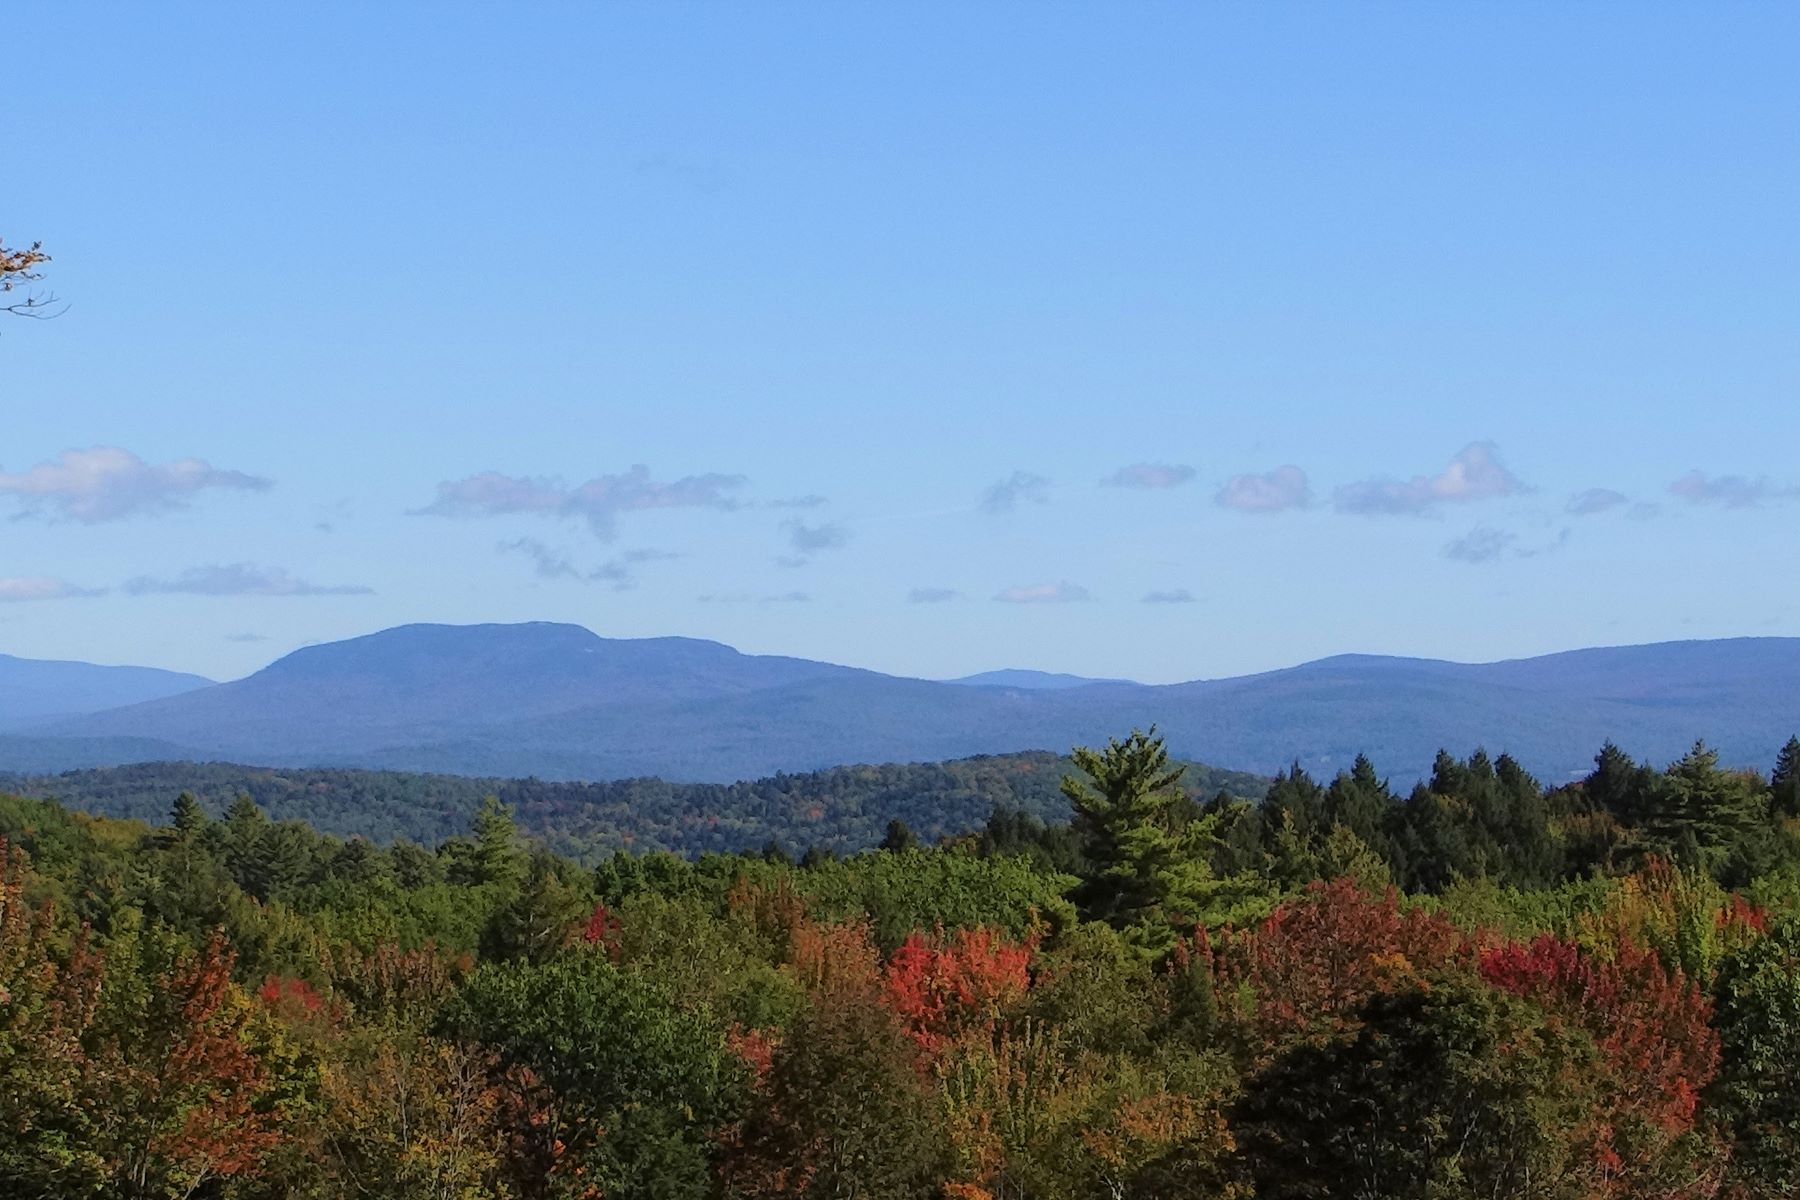 Single Family Homes for Sale at Top of the world, take in your panoramic views 1506 New Boston Rd Norwich, Vermont 05055 United States